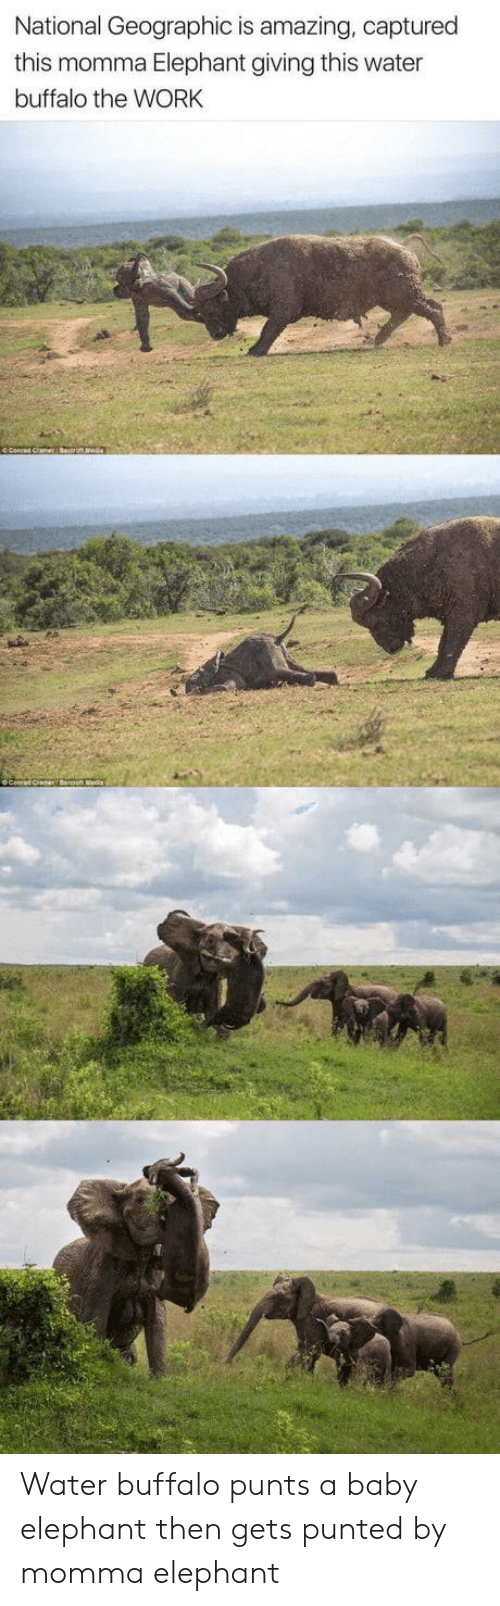 Baby Elephant: National Geographic is amazing, captured  this momma Elephant giving this water  buffalo the WORK Water buffalo punts a baby elephant then gets punted by momma elephant